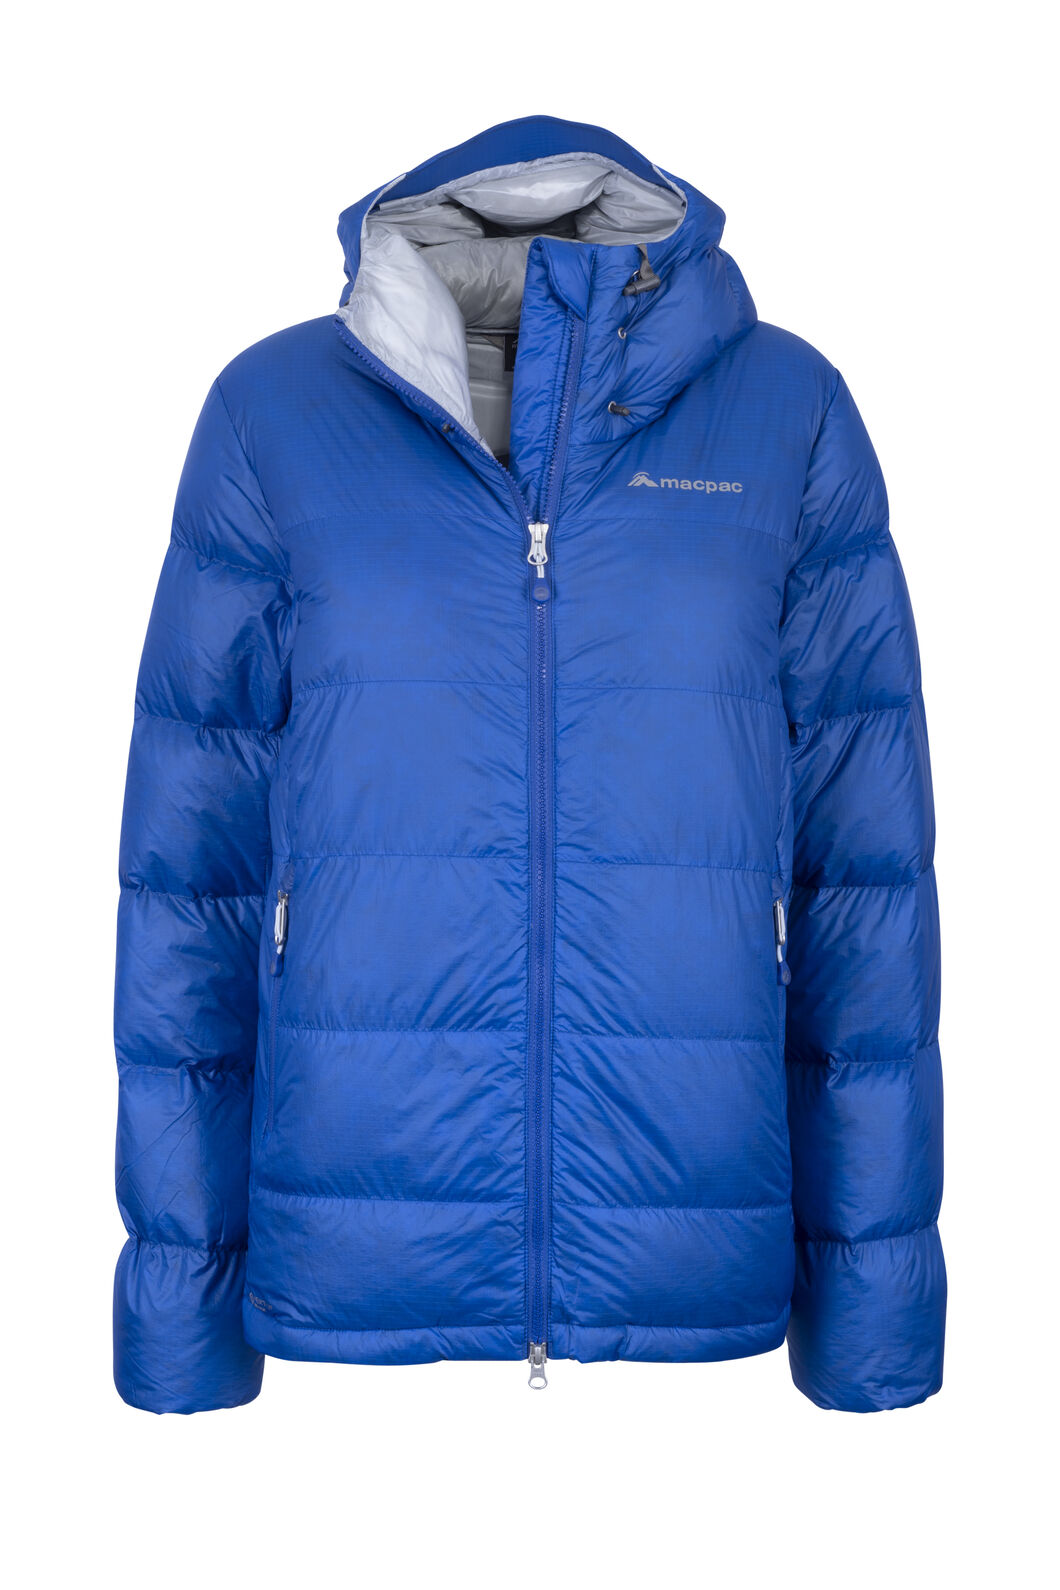 Macpac NZAT Arrowsmith HyperDRY™ Hooded Down Jacket — Women's, Nautical Blue, hi-res